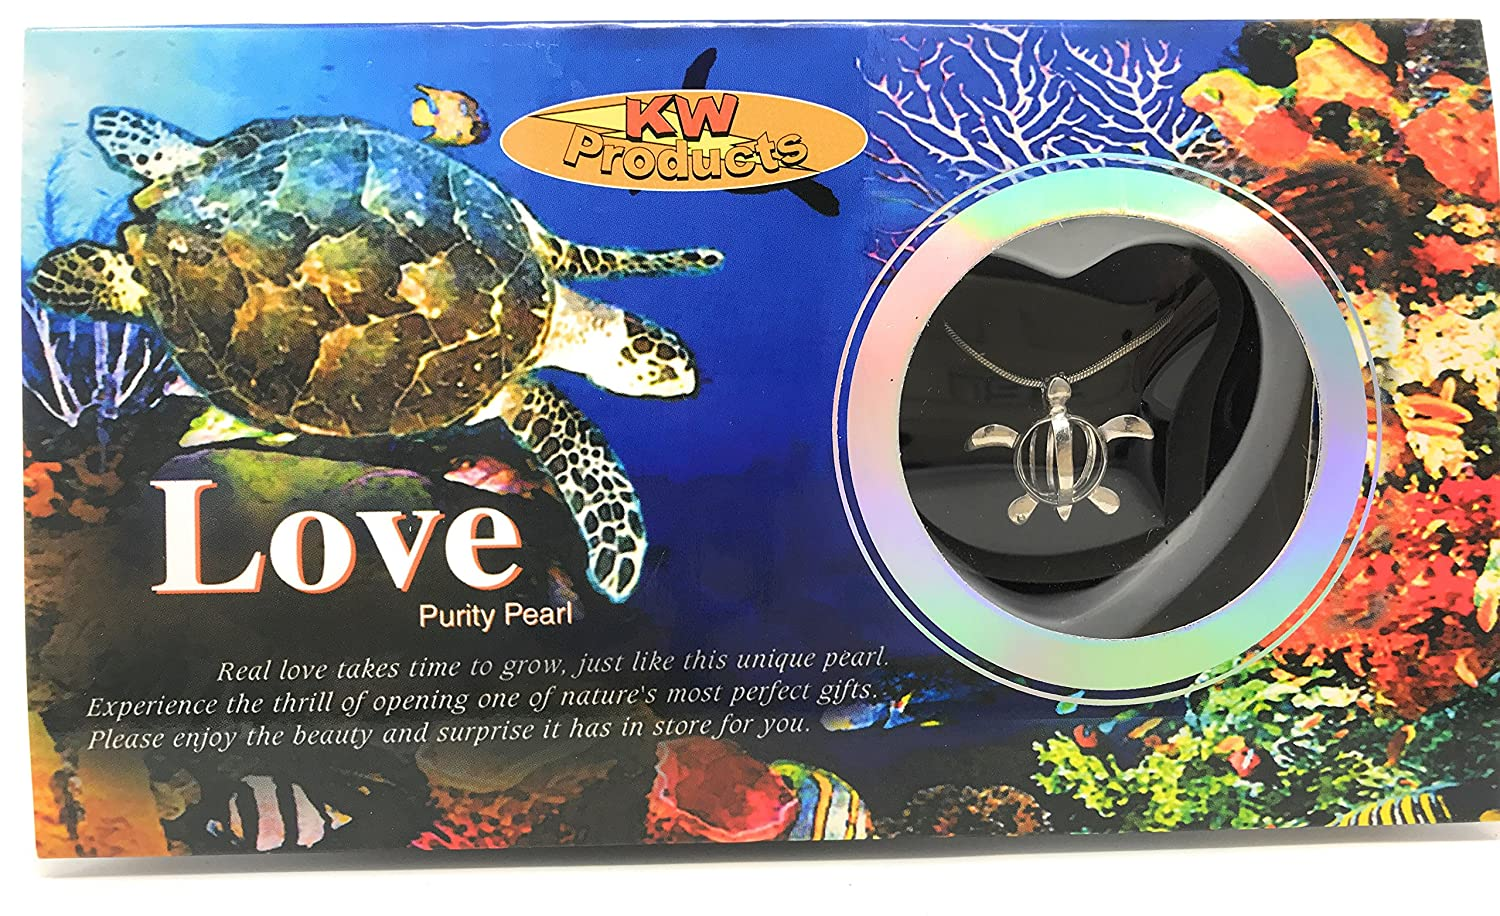 KW Products - Love Wish Pearl Kit - Harvest Your Own Pearl - Assorted '